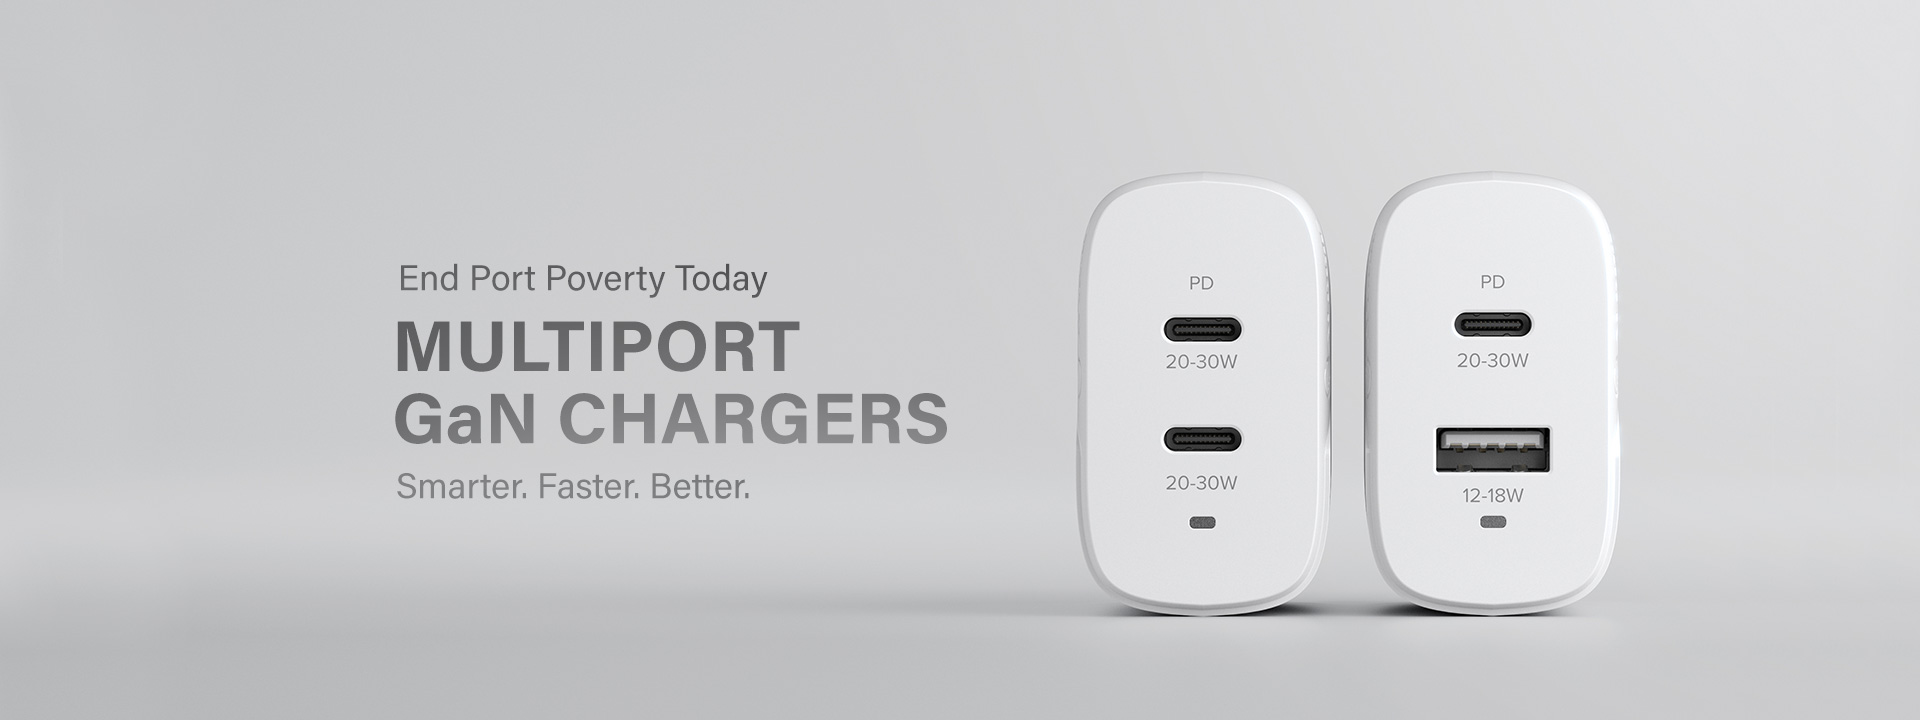 Multiport GaN chargers